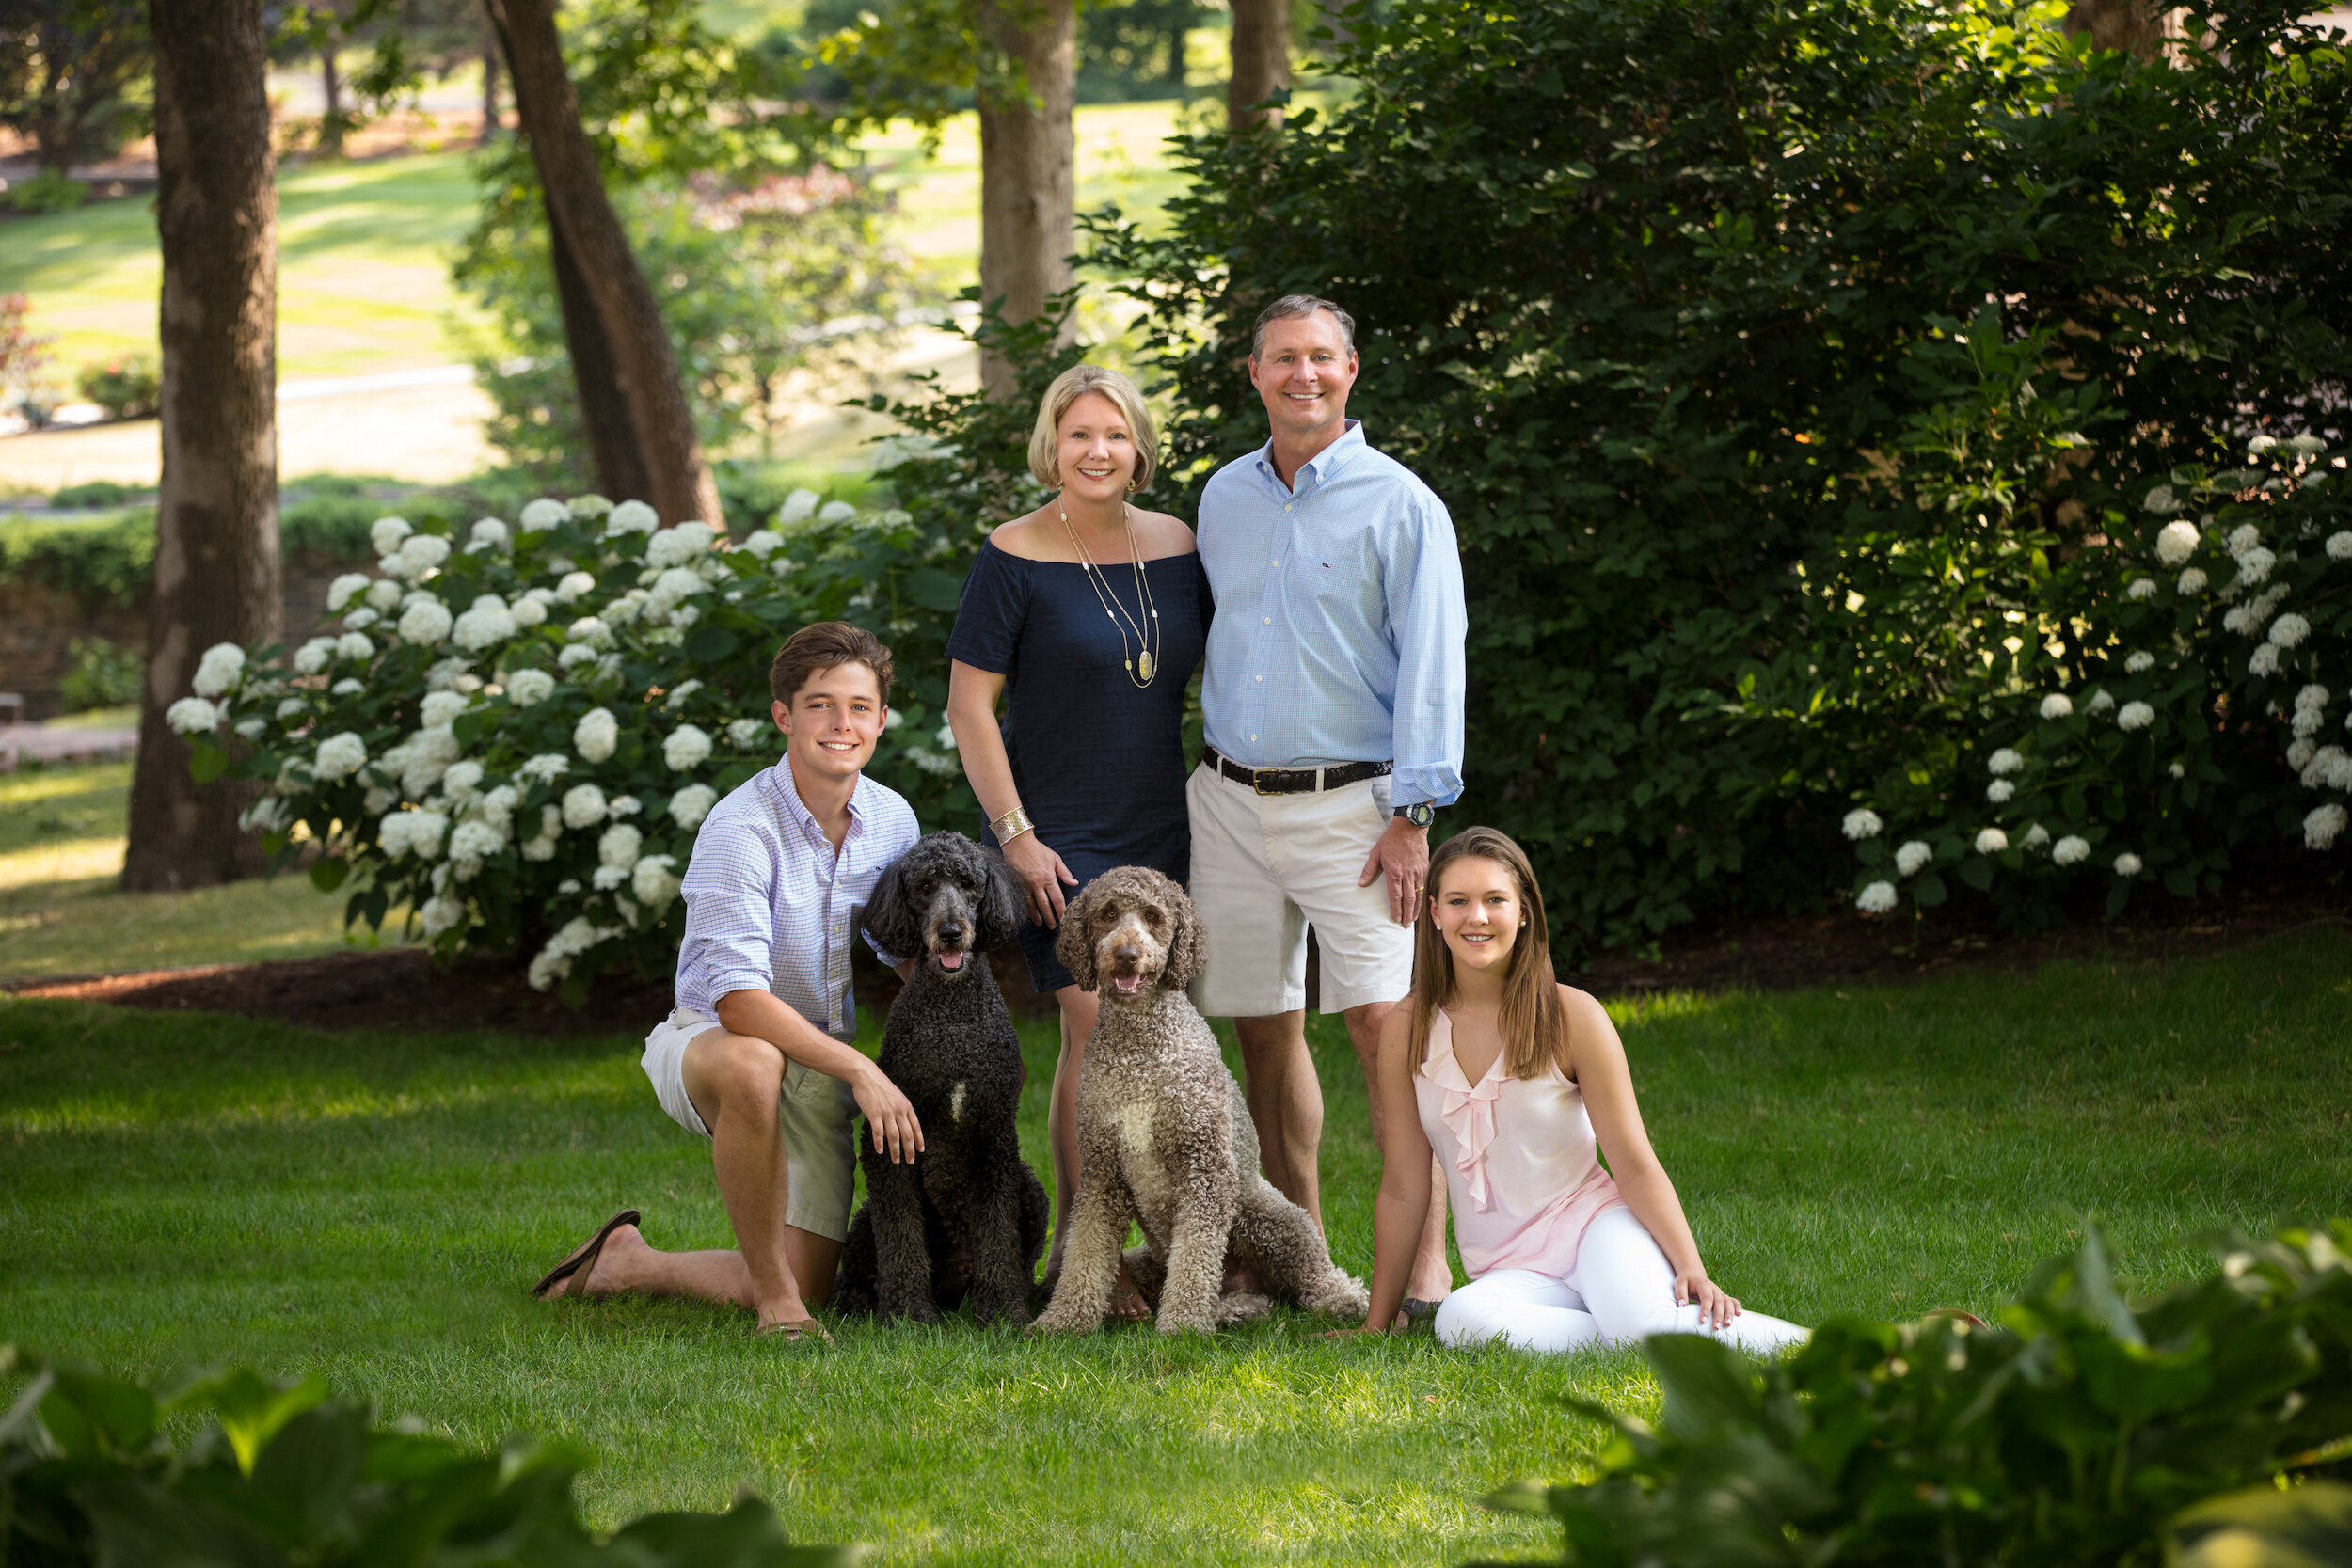 A smooth as silk family portrait session with a great looking family and their pets.